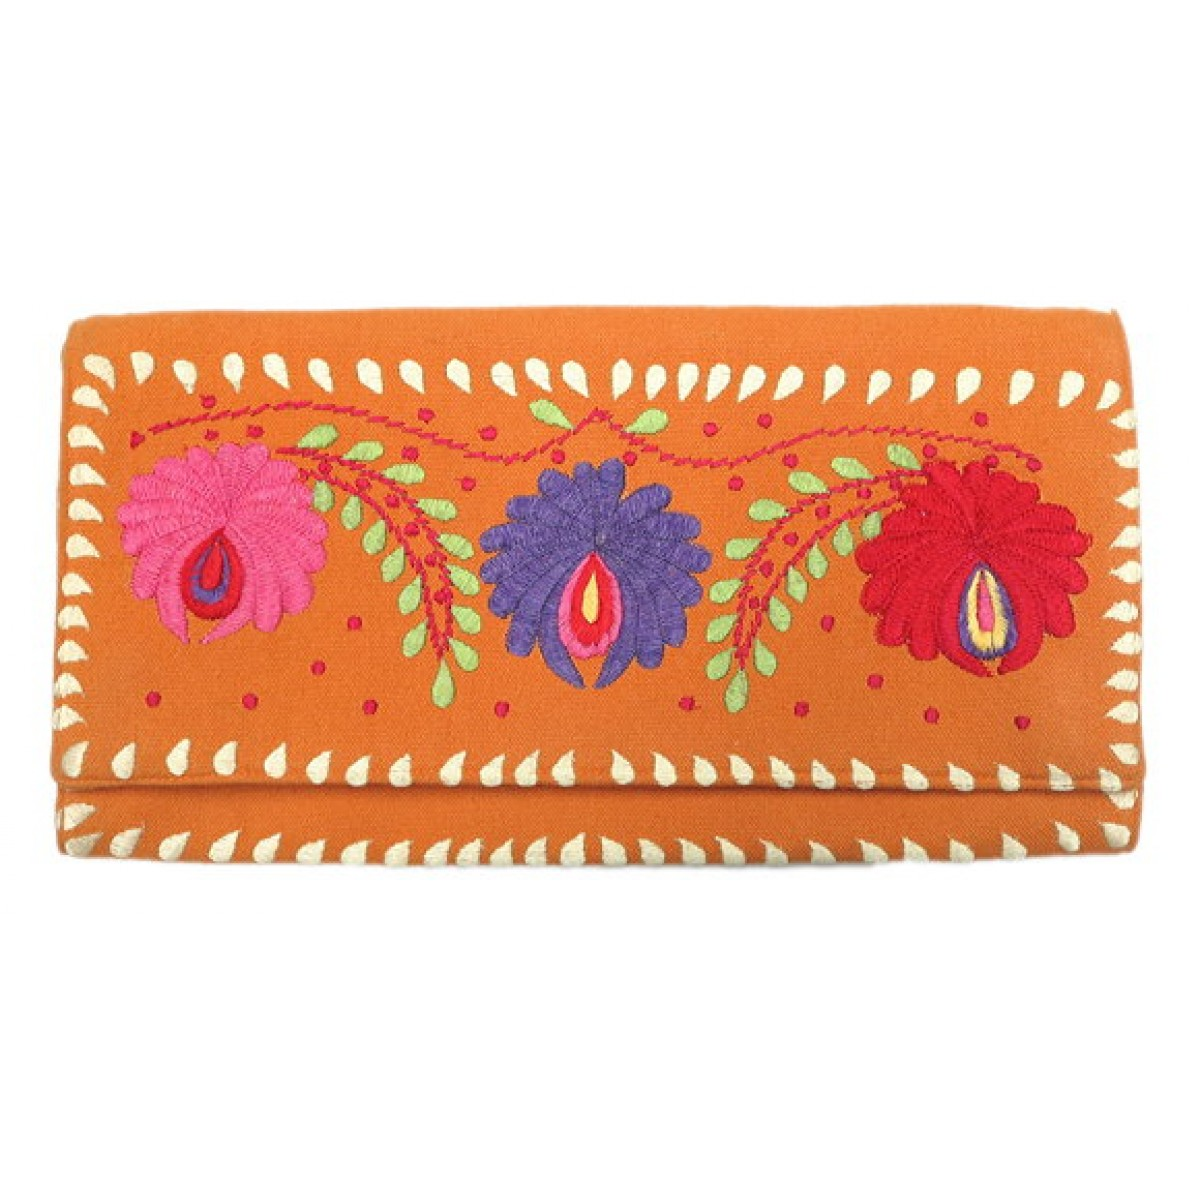 Clutch Canvas Floral Embroidery